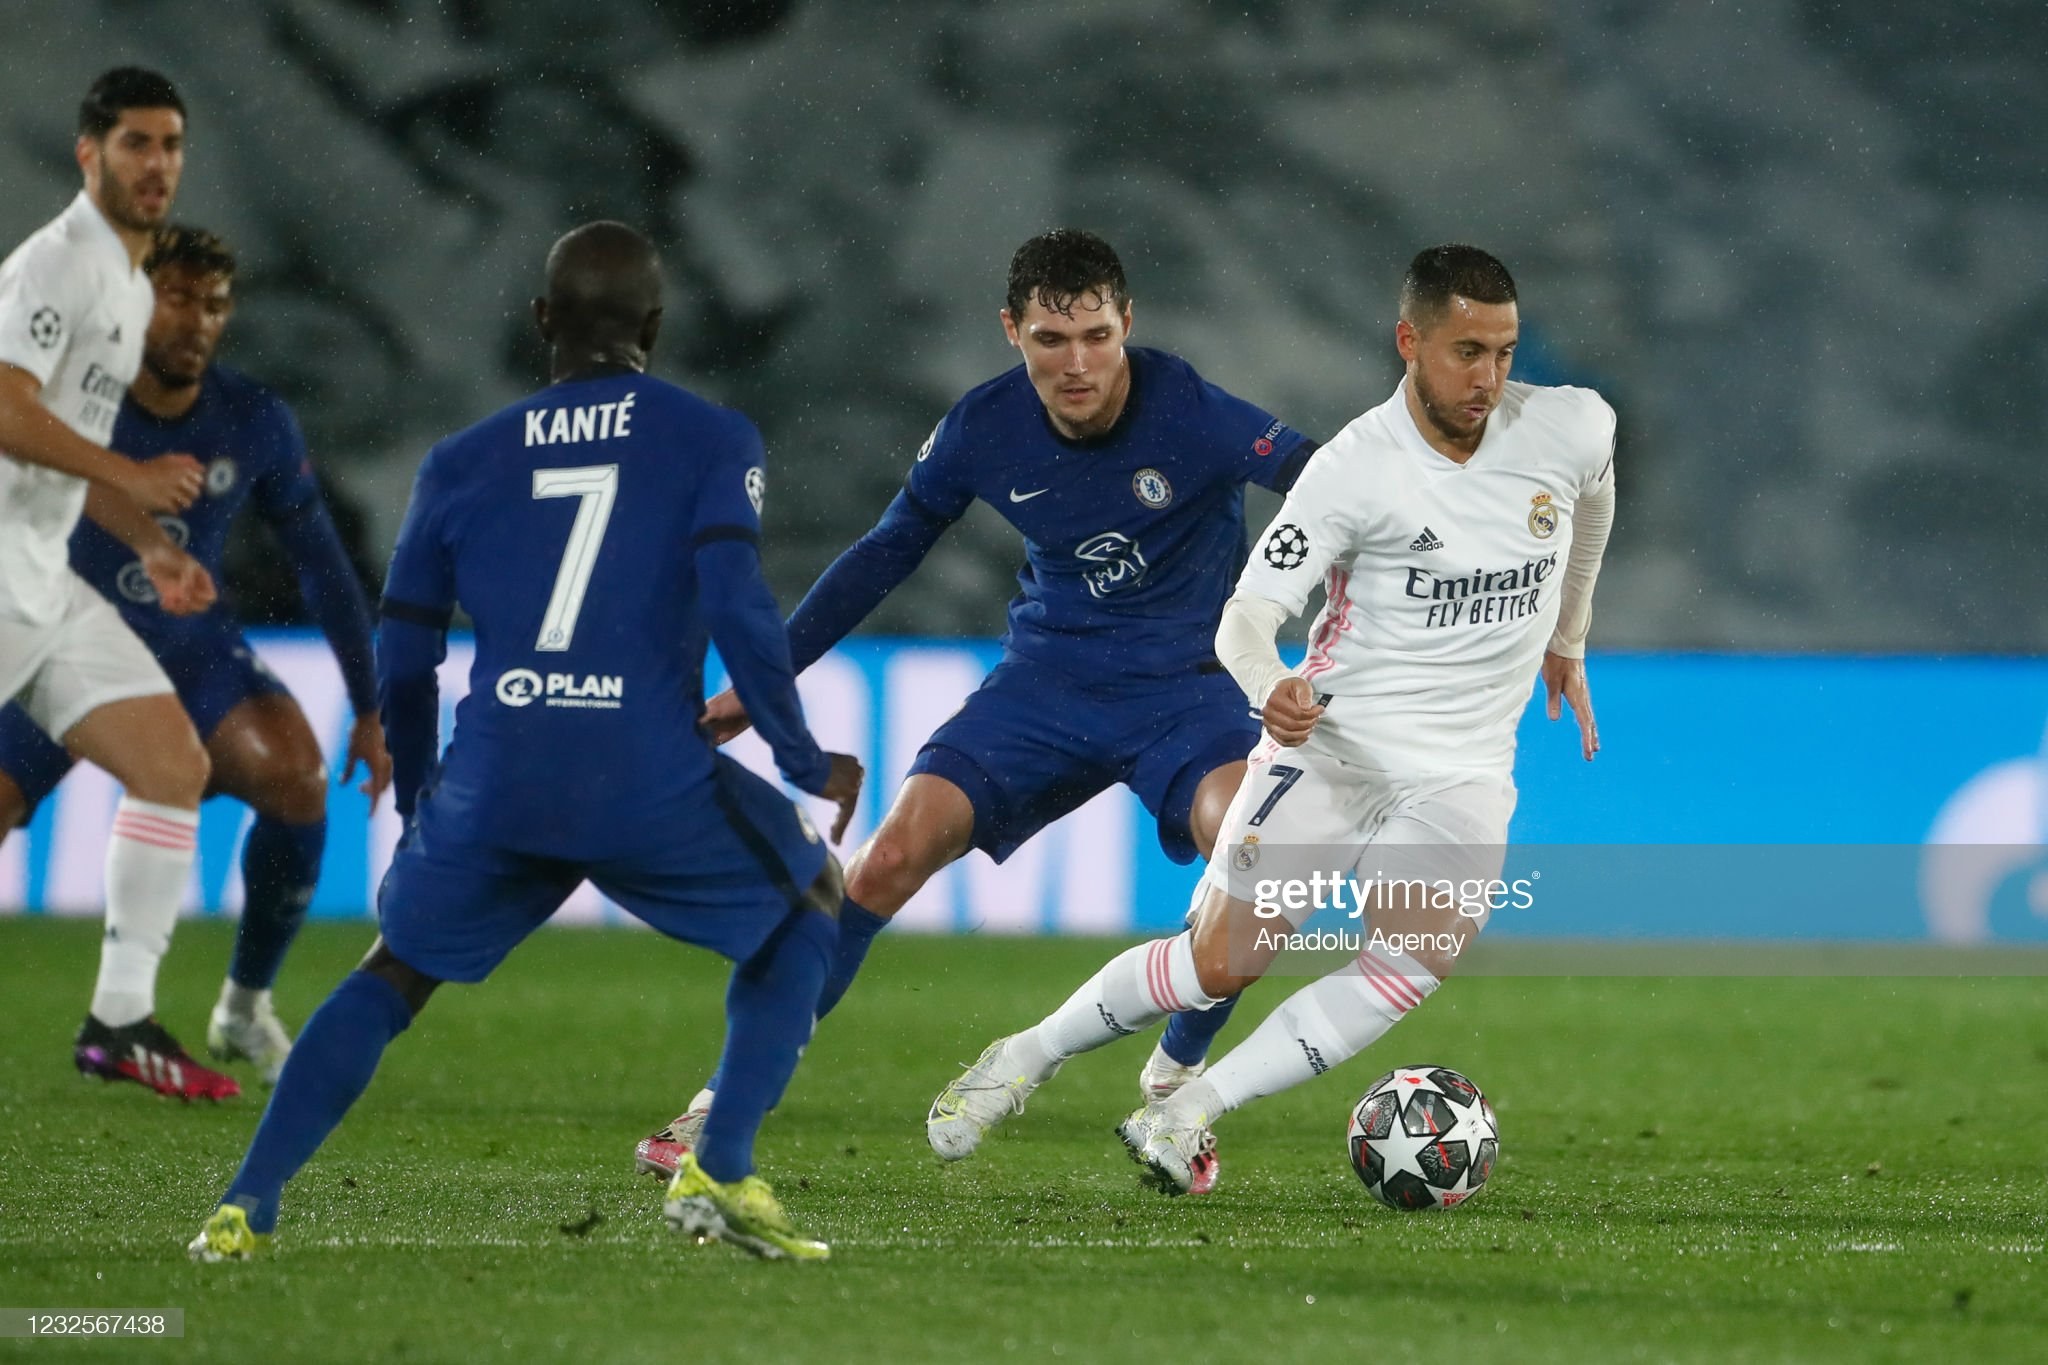 Chelsea vs Real Madrid preview, prediction and odds